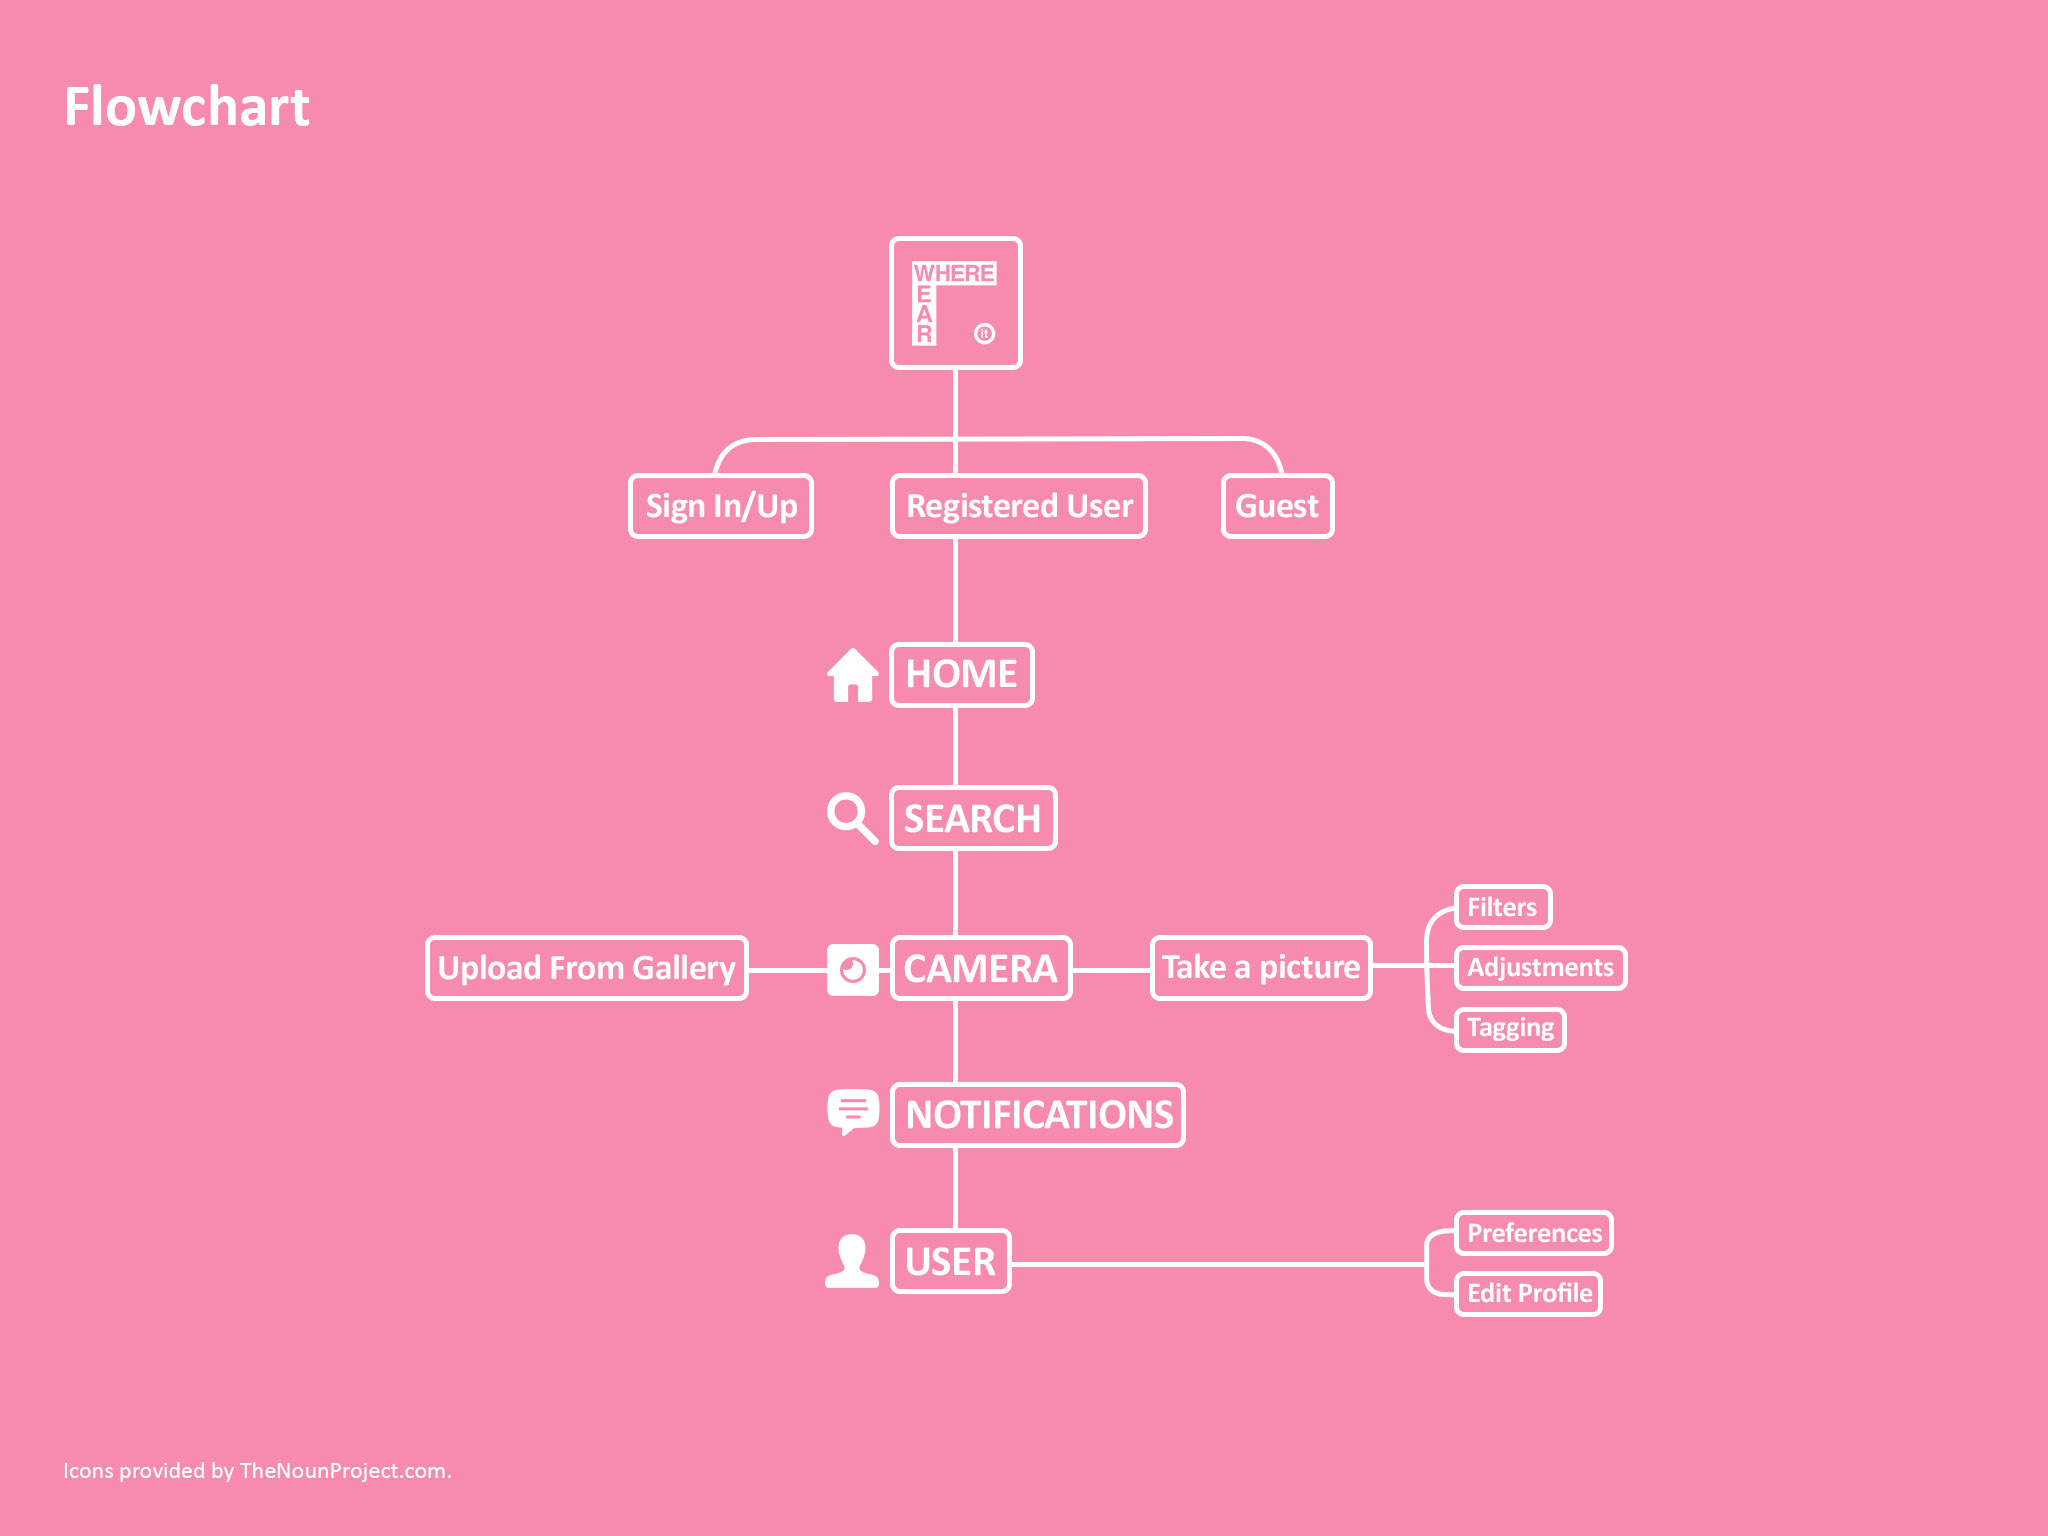 Wear_It-_0010_Flowchart.jpg